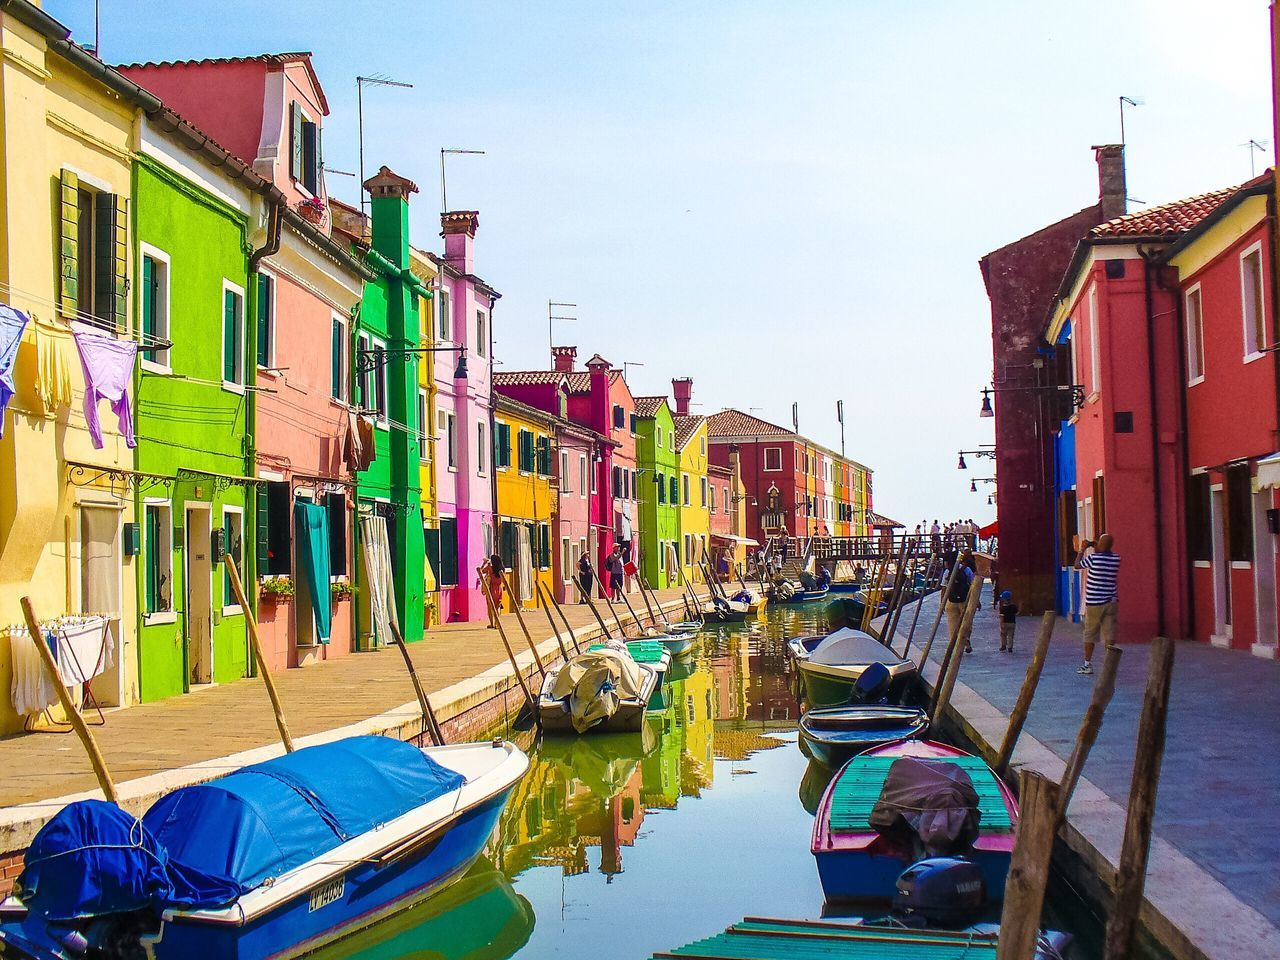 Building Exterior Architecture Island Life Multi Colored Water Reflection Canal Mode Of Transport Sky Transportation Cultures No People Outdoors Nautical Vessel Day Gondola - Traditional Boat Rows Of Things House Paint Exterior Design Row Of Houses Colorful Houses Home Exterior Burano Simple Life Boats And Moorings